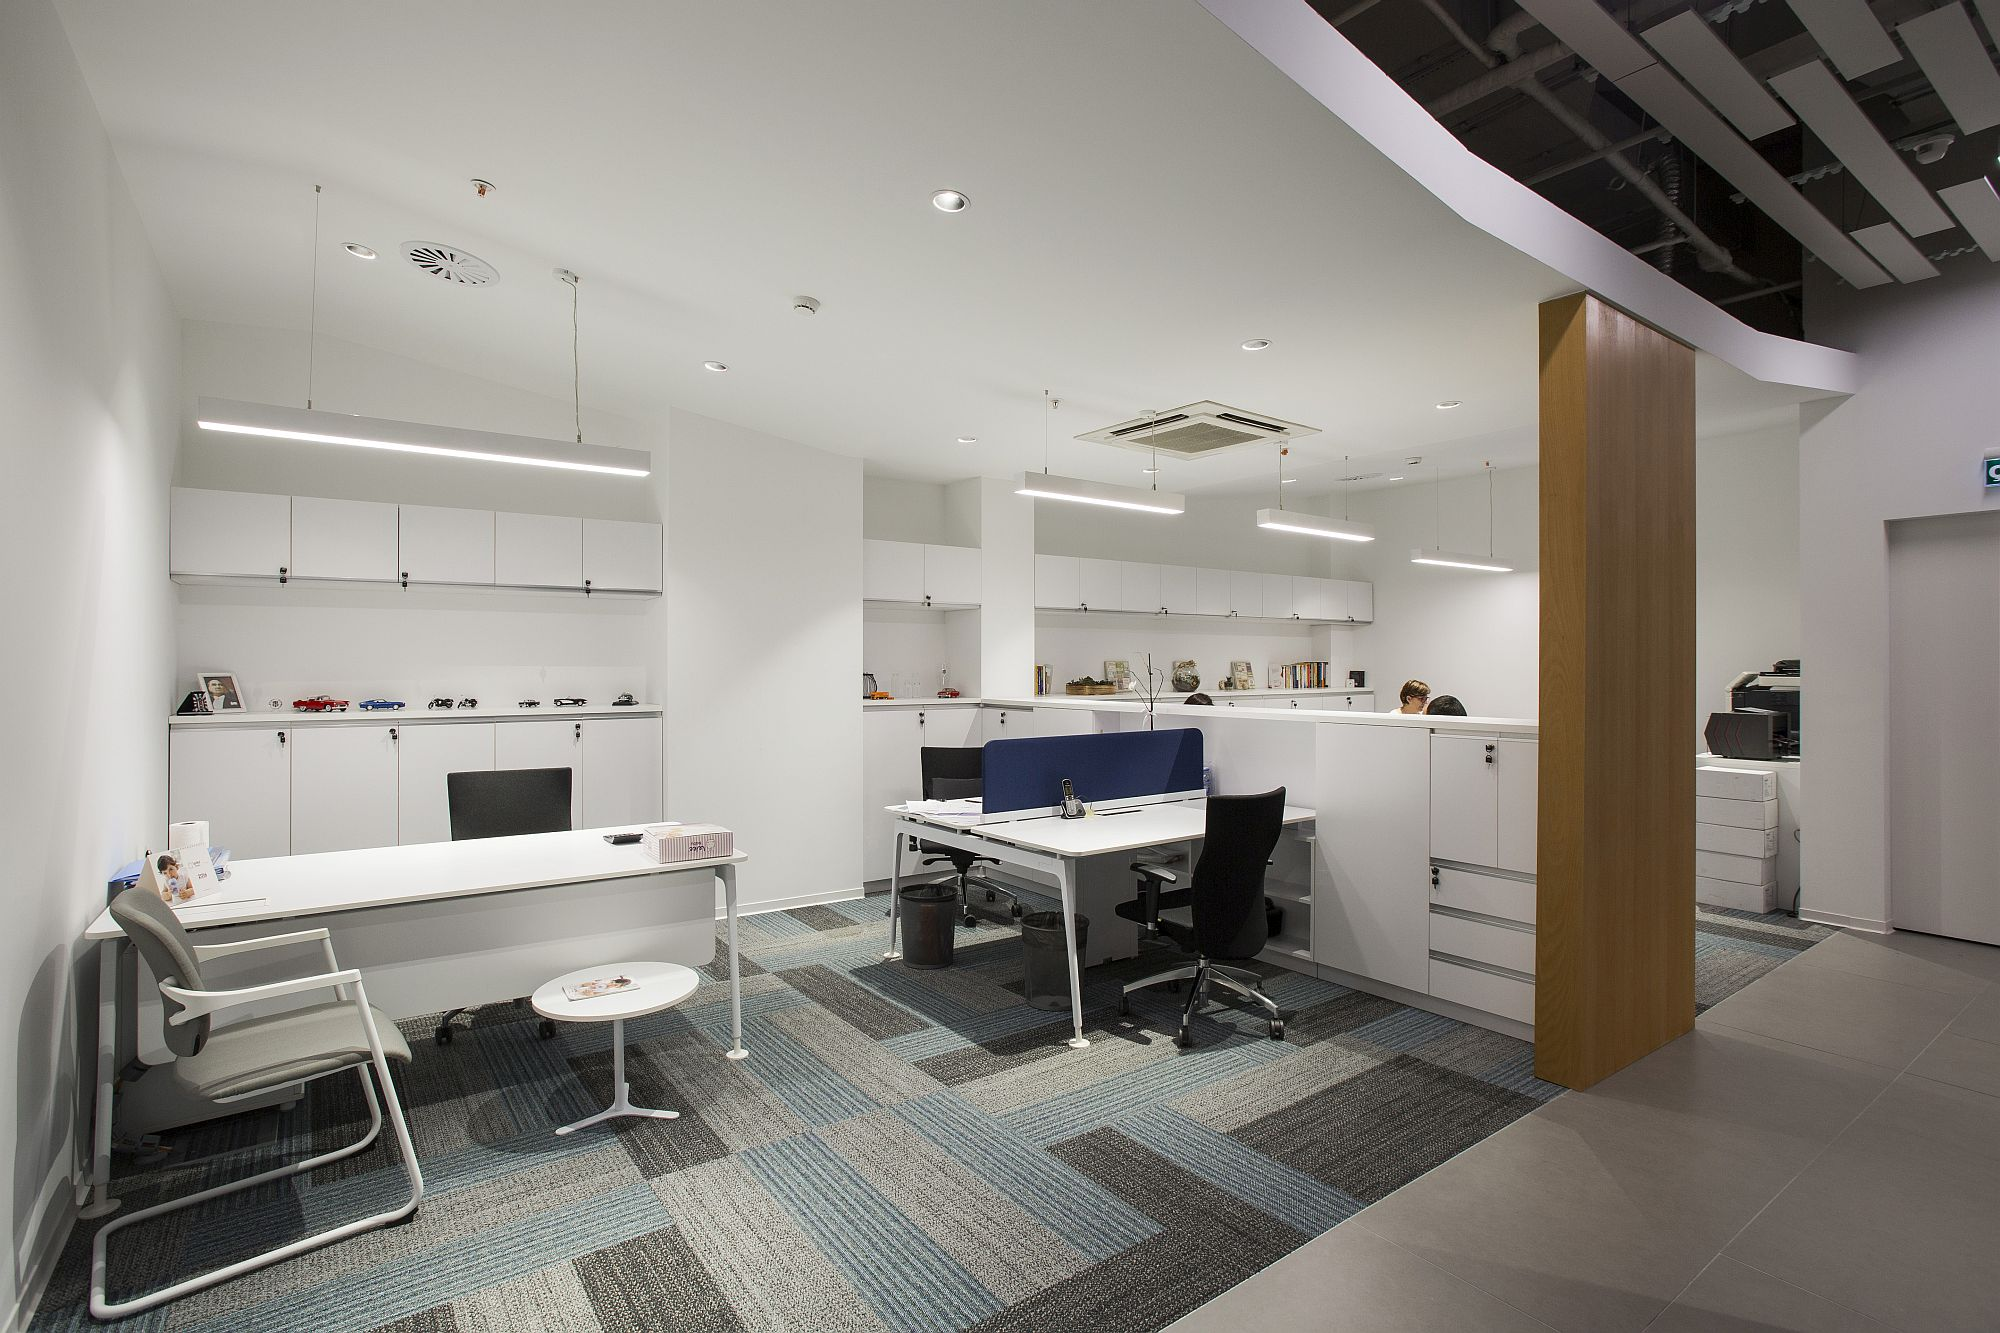 Private workspaces coupled with shared work areas in the office